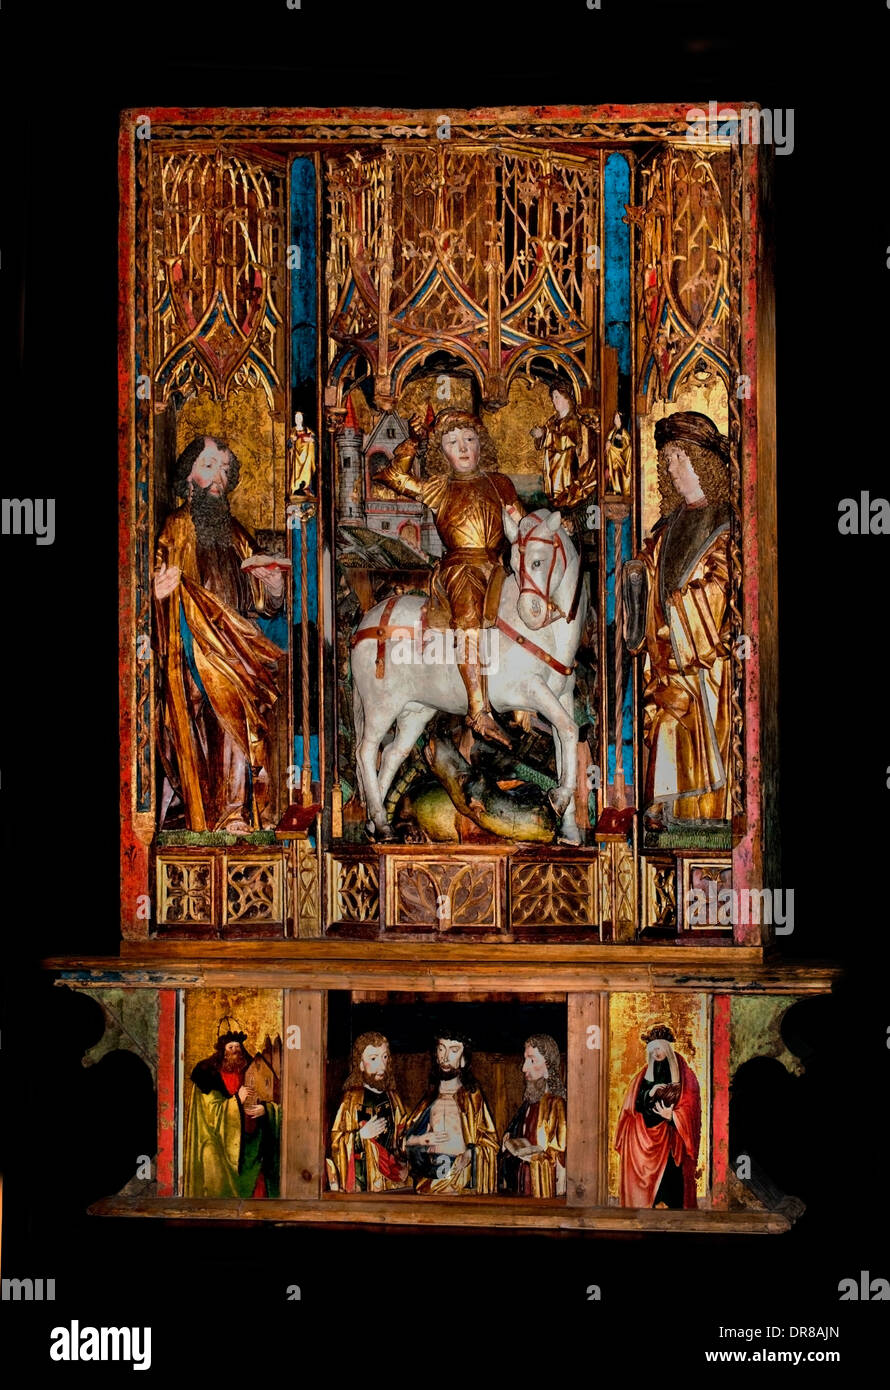 Altarpiece of St. George 1480-1490 Bruneck (South Tyrol) Church Sankt Georgen an der Ahr Italy Italian - Stock Image